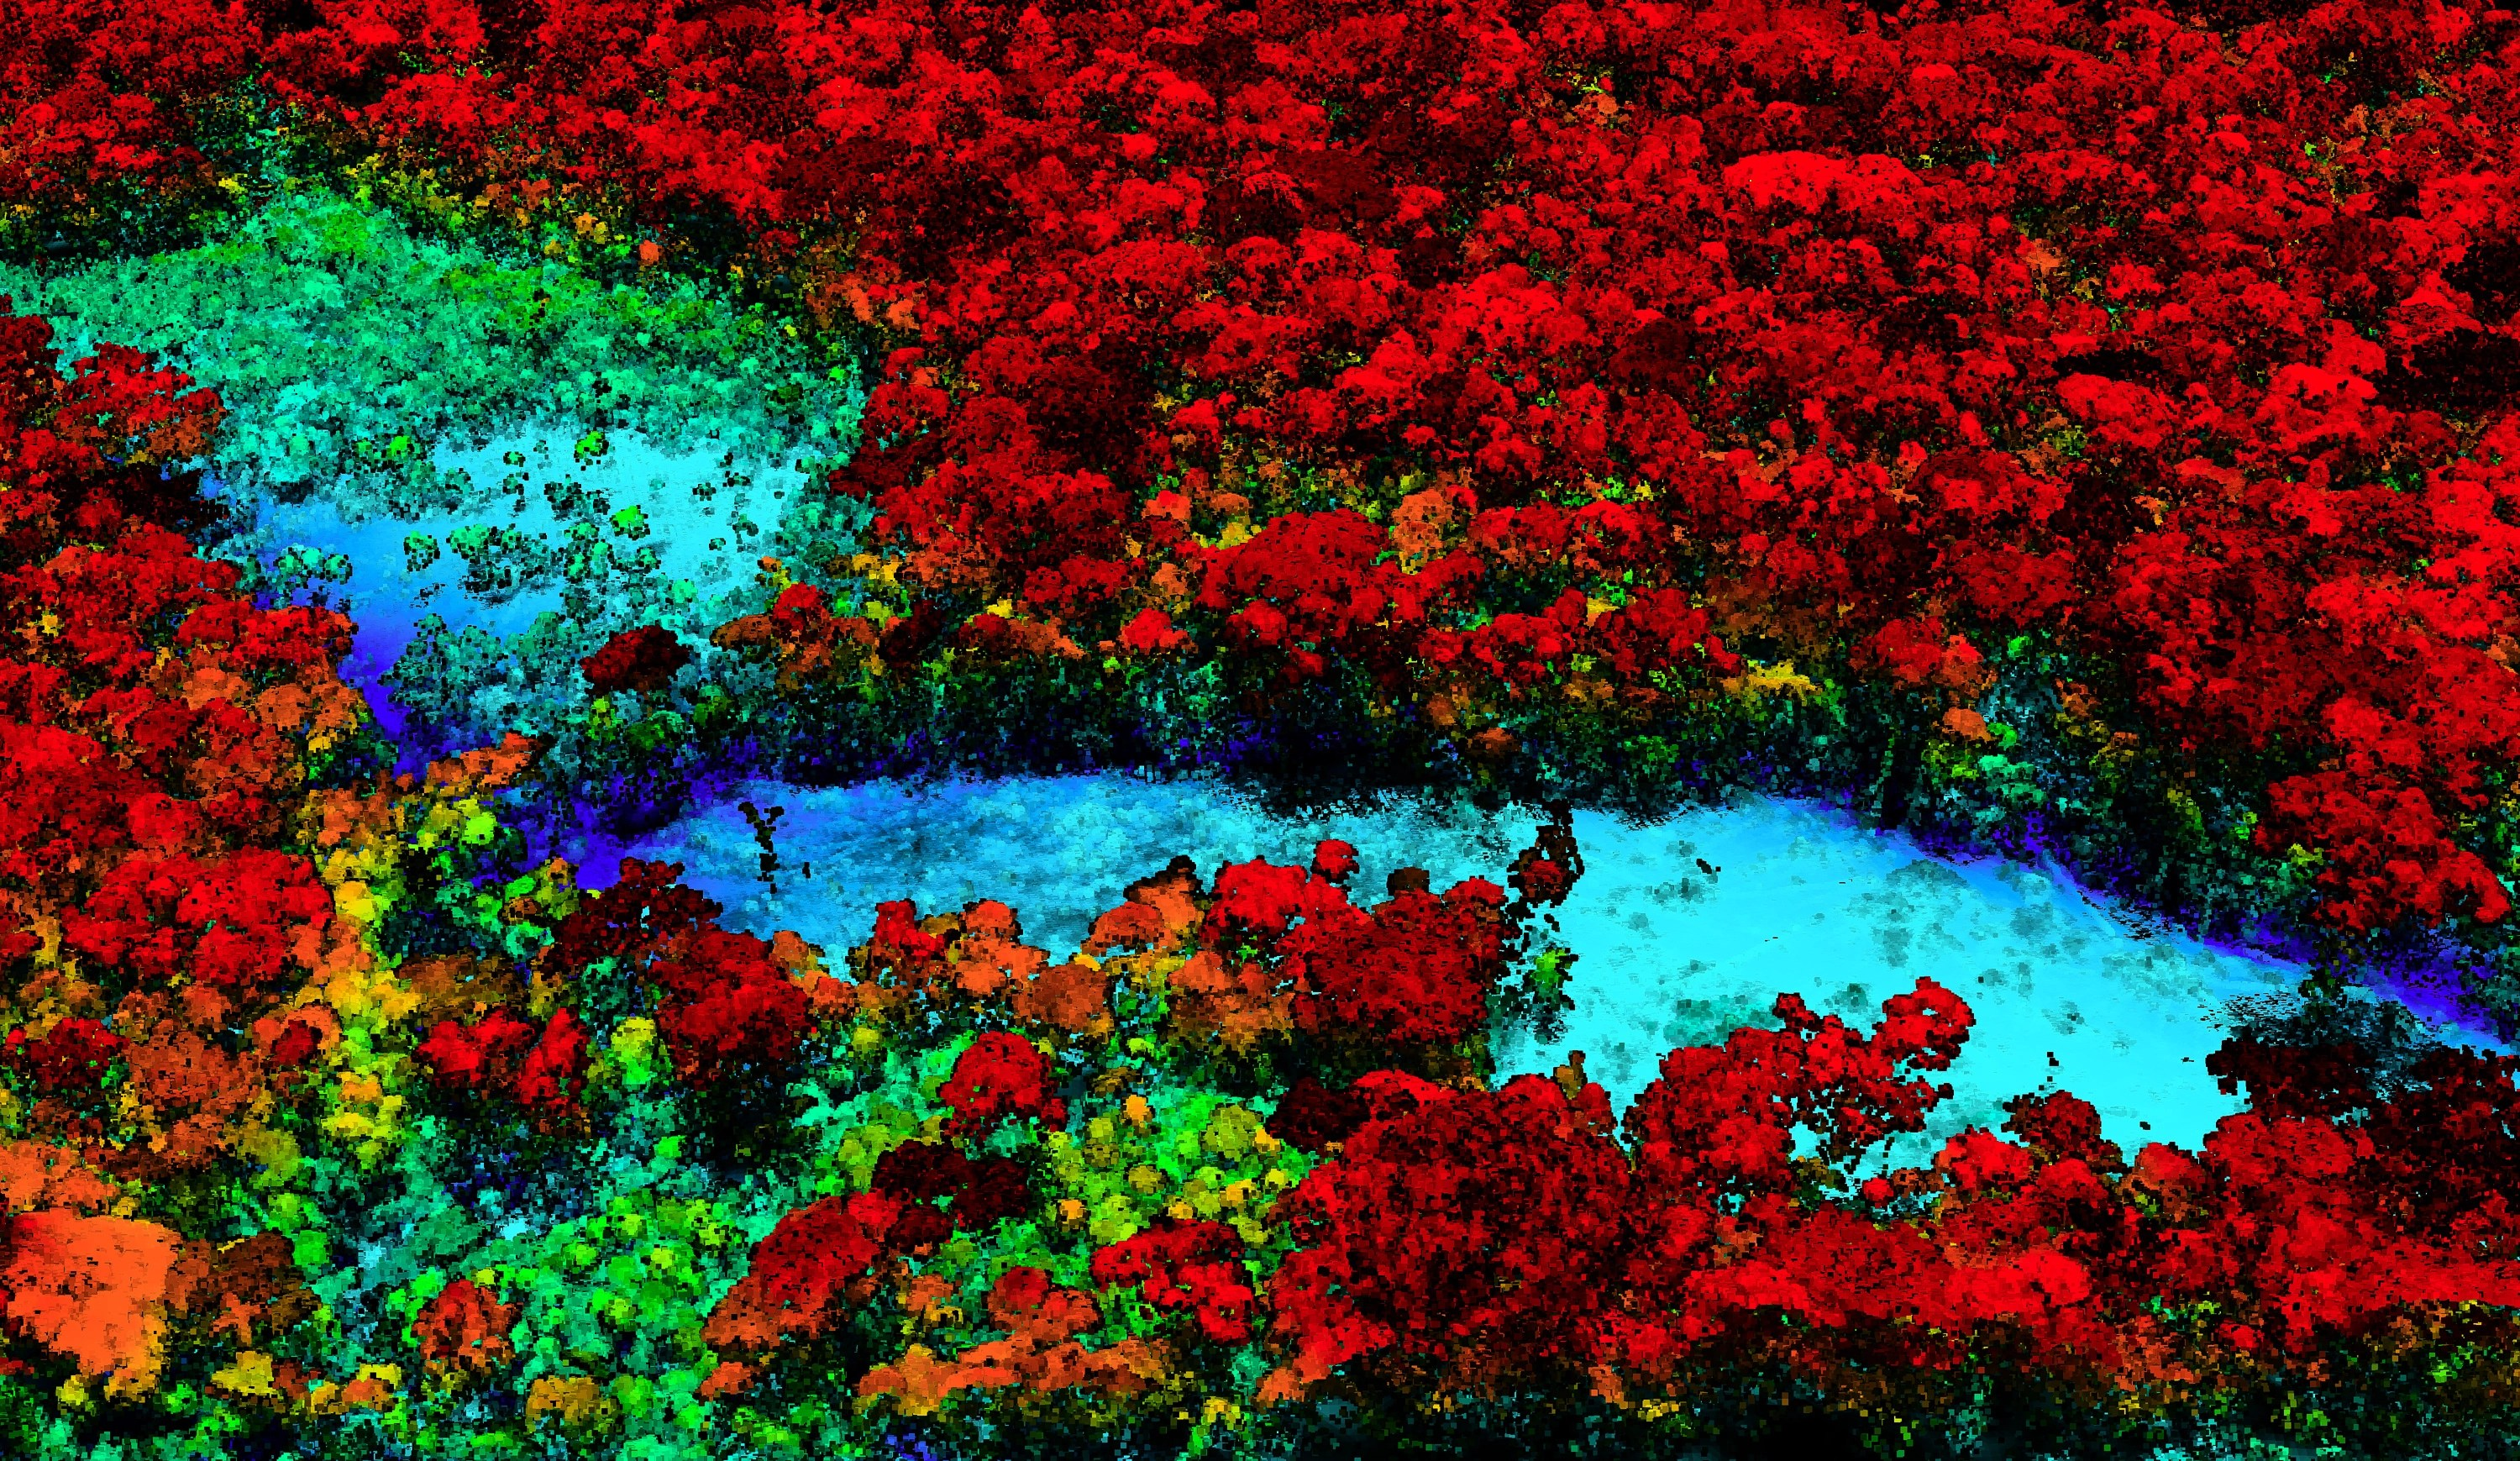 Breakthrough Technology Enables 3d Mapping Of Rainforests